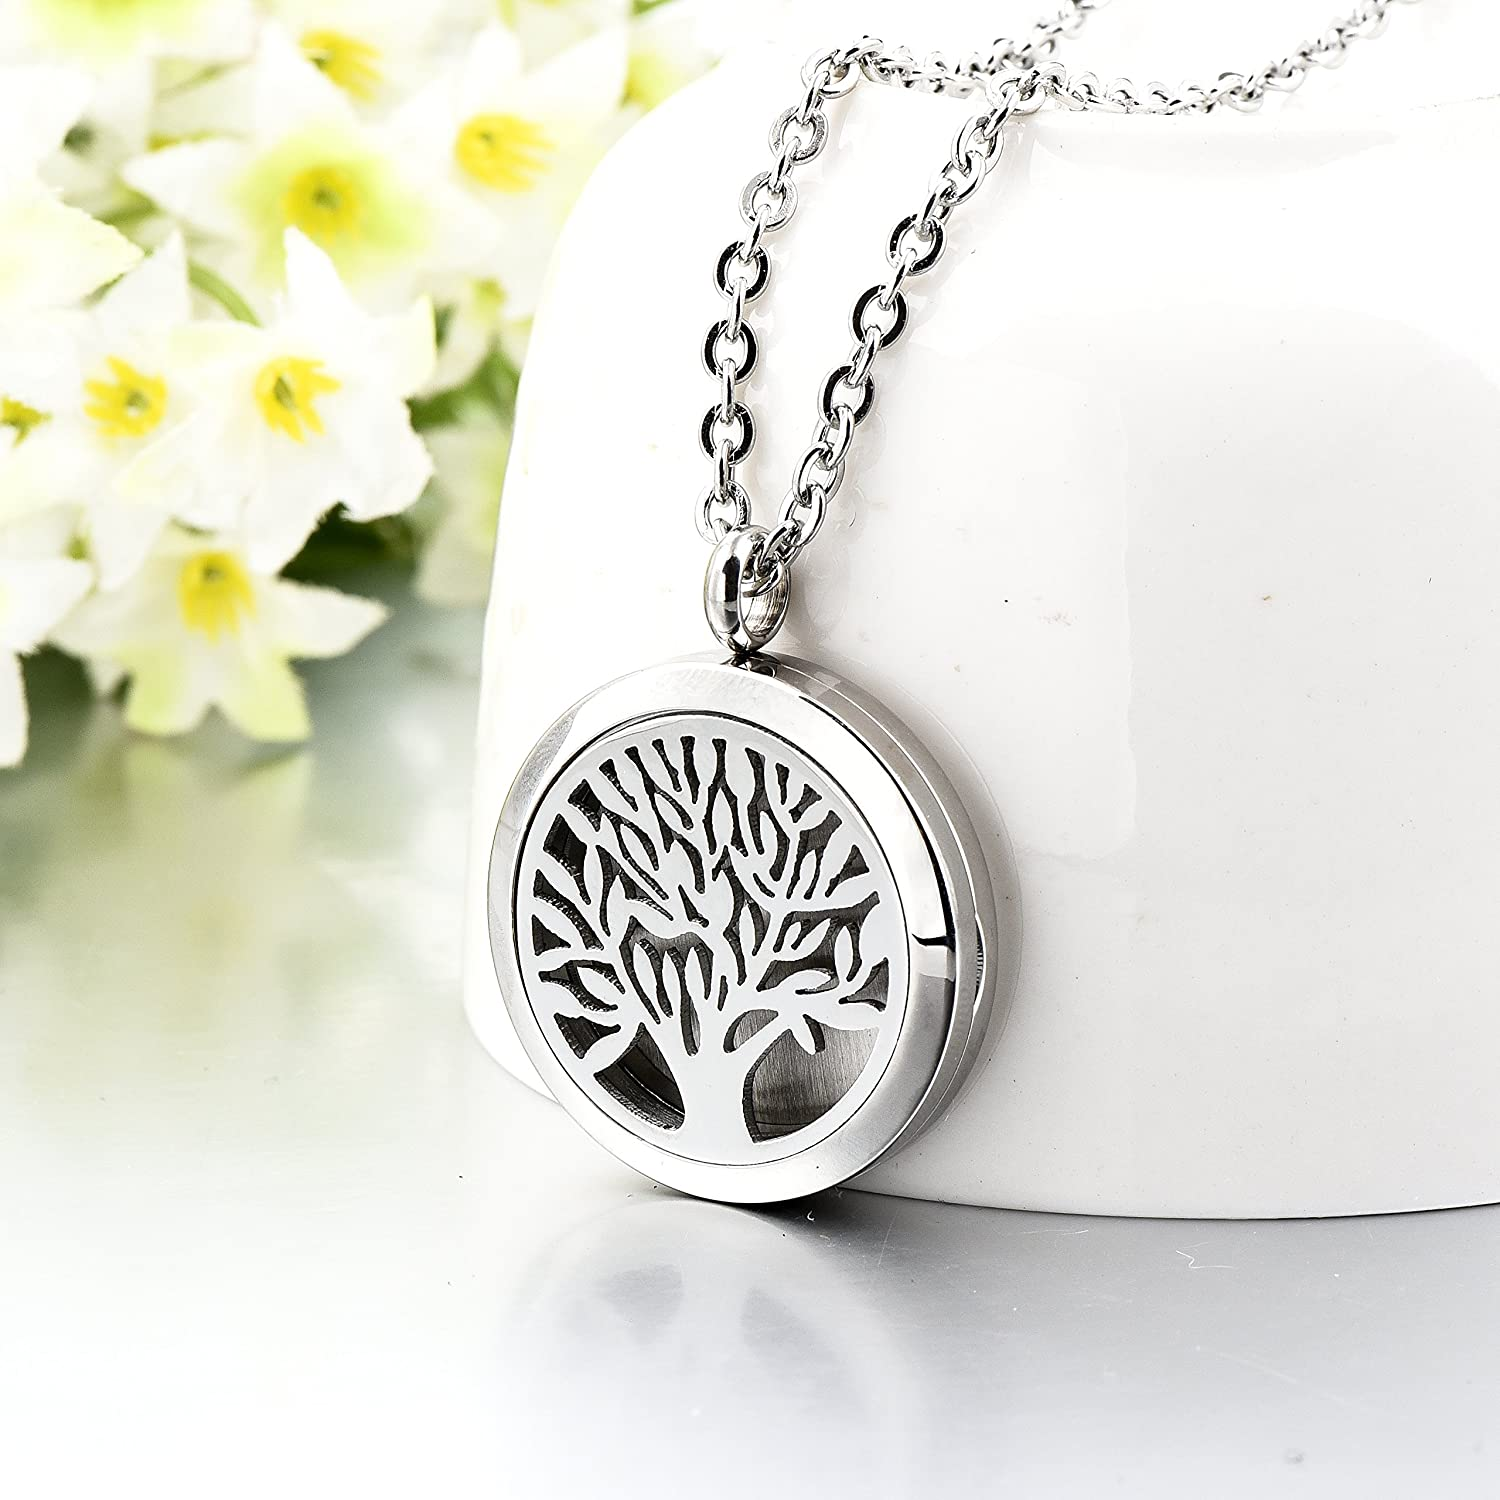 Long Way Tree of Life 316L Stainless Steel Essential Oil Diffuser Necklace Pendant Jewelry 22.8